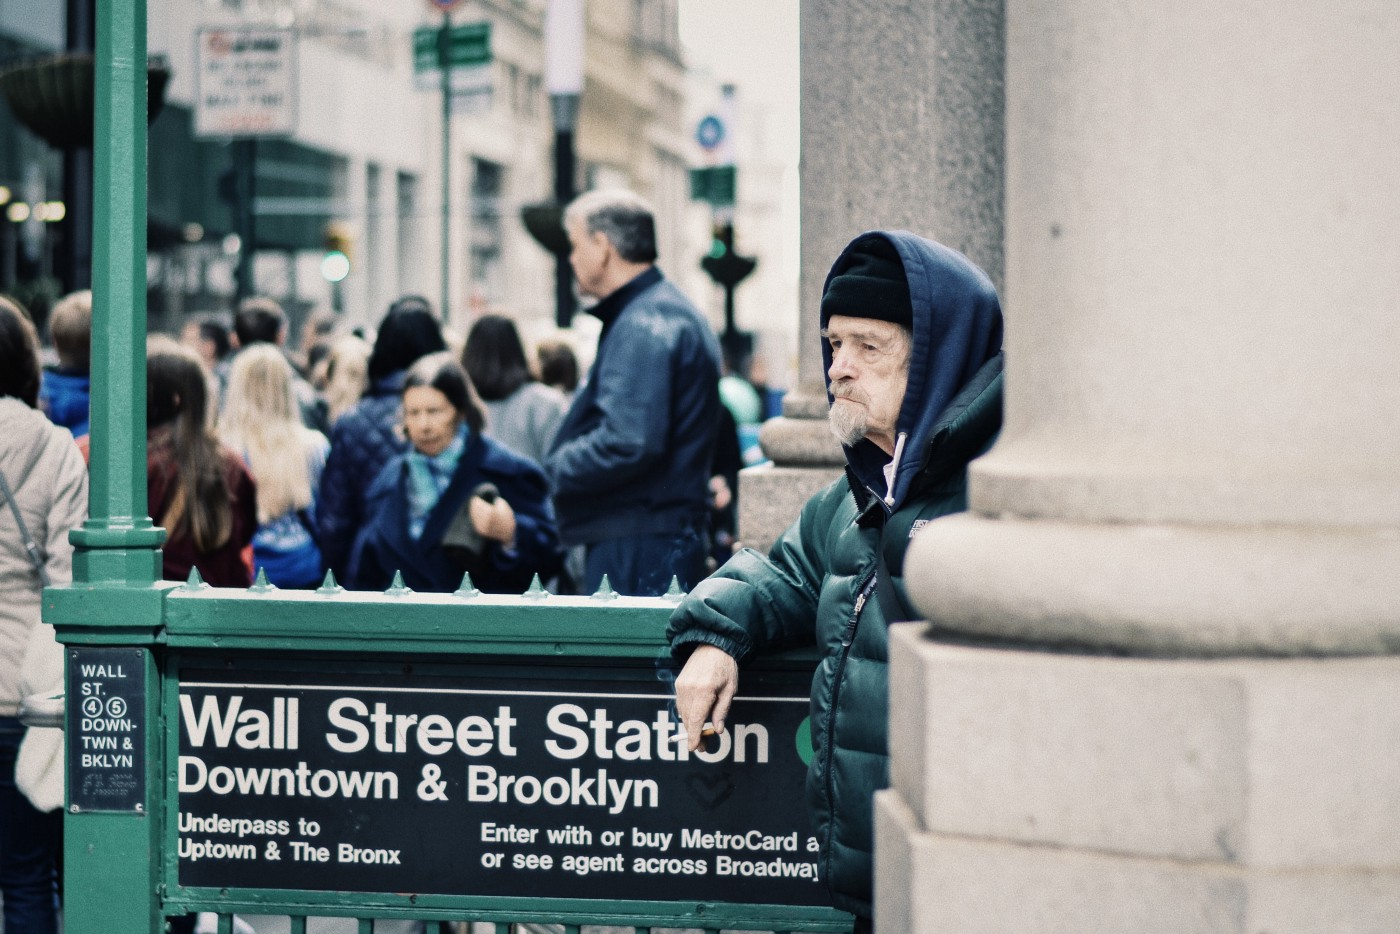 Homeless Old Man on Wall Street